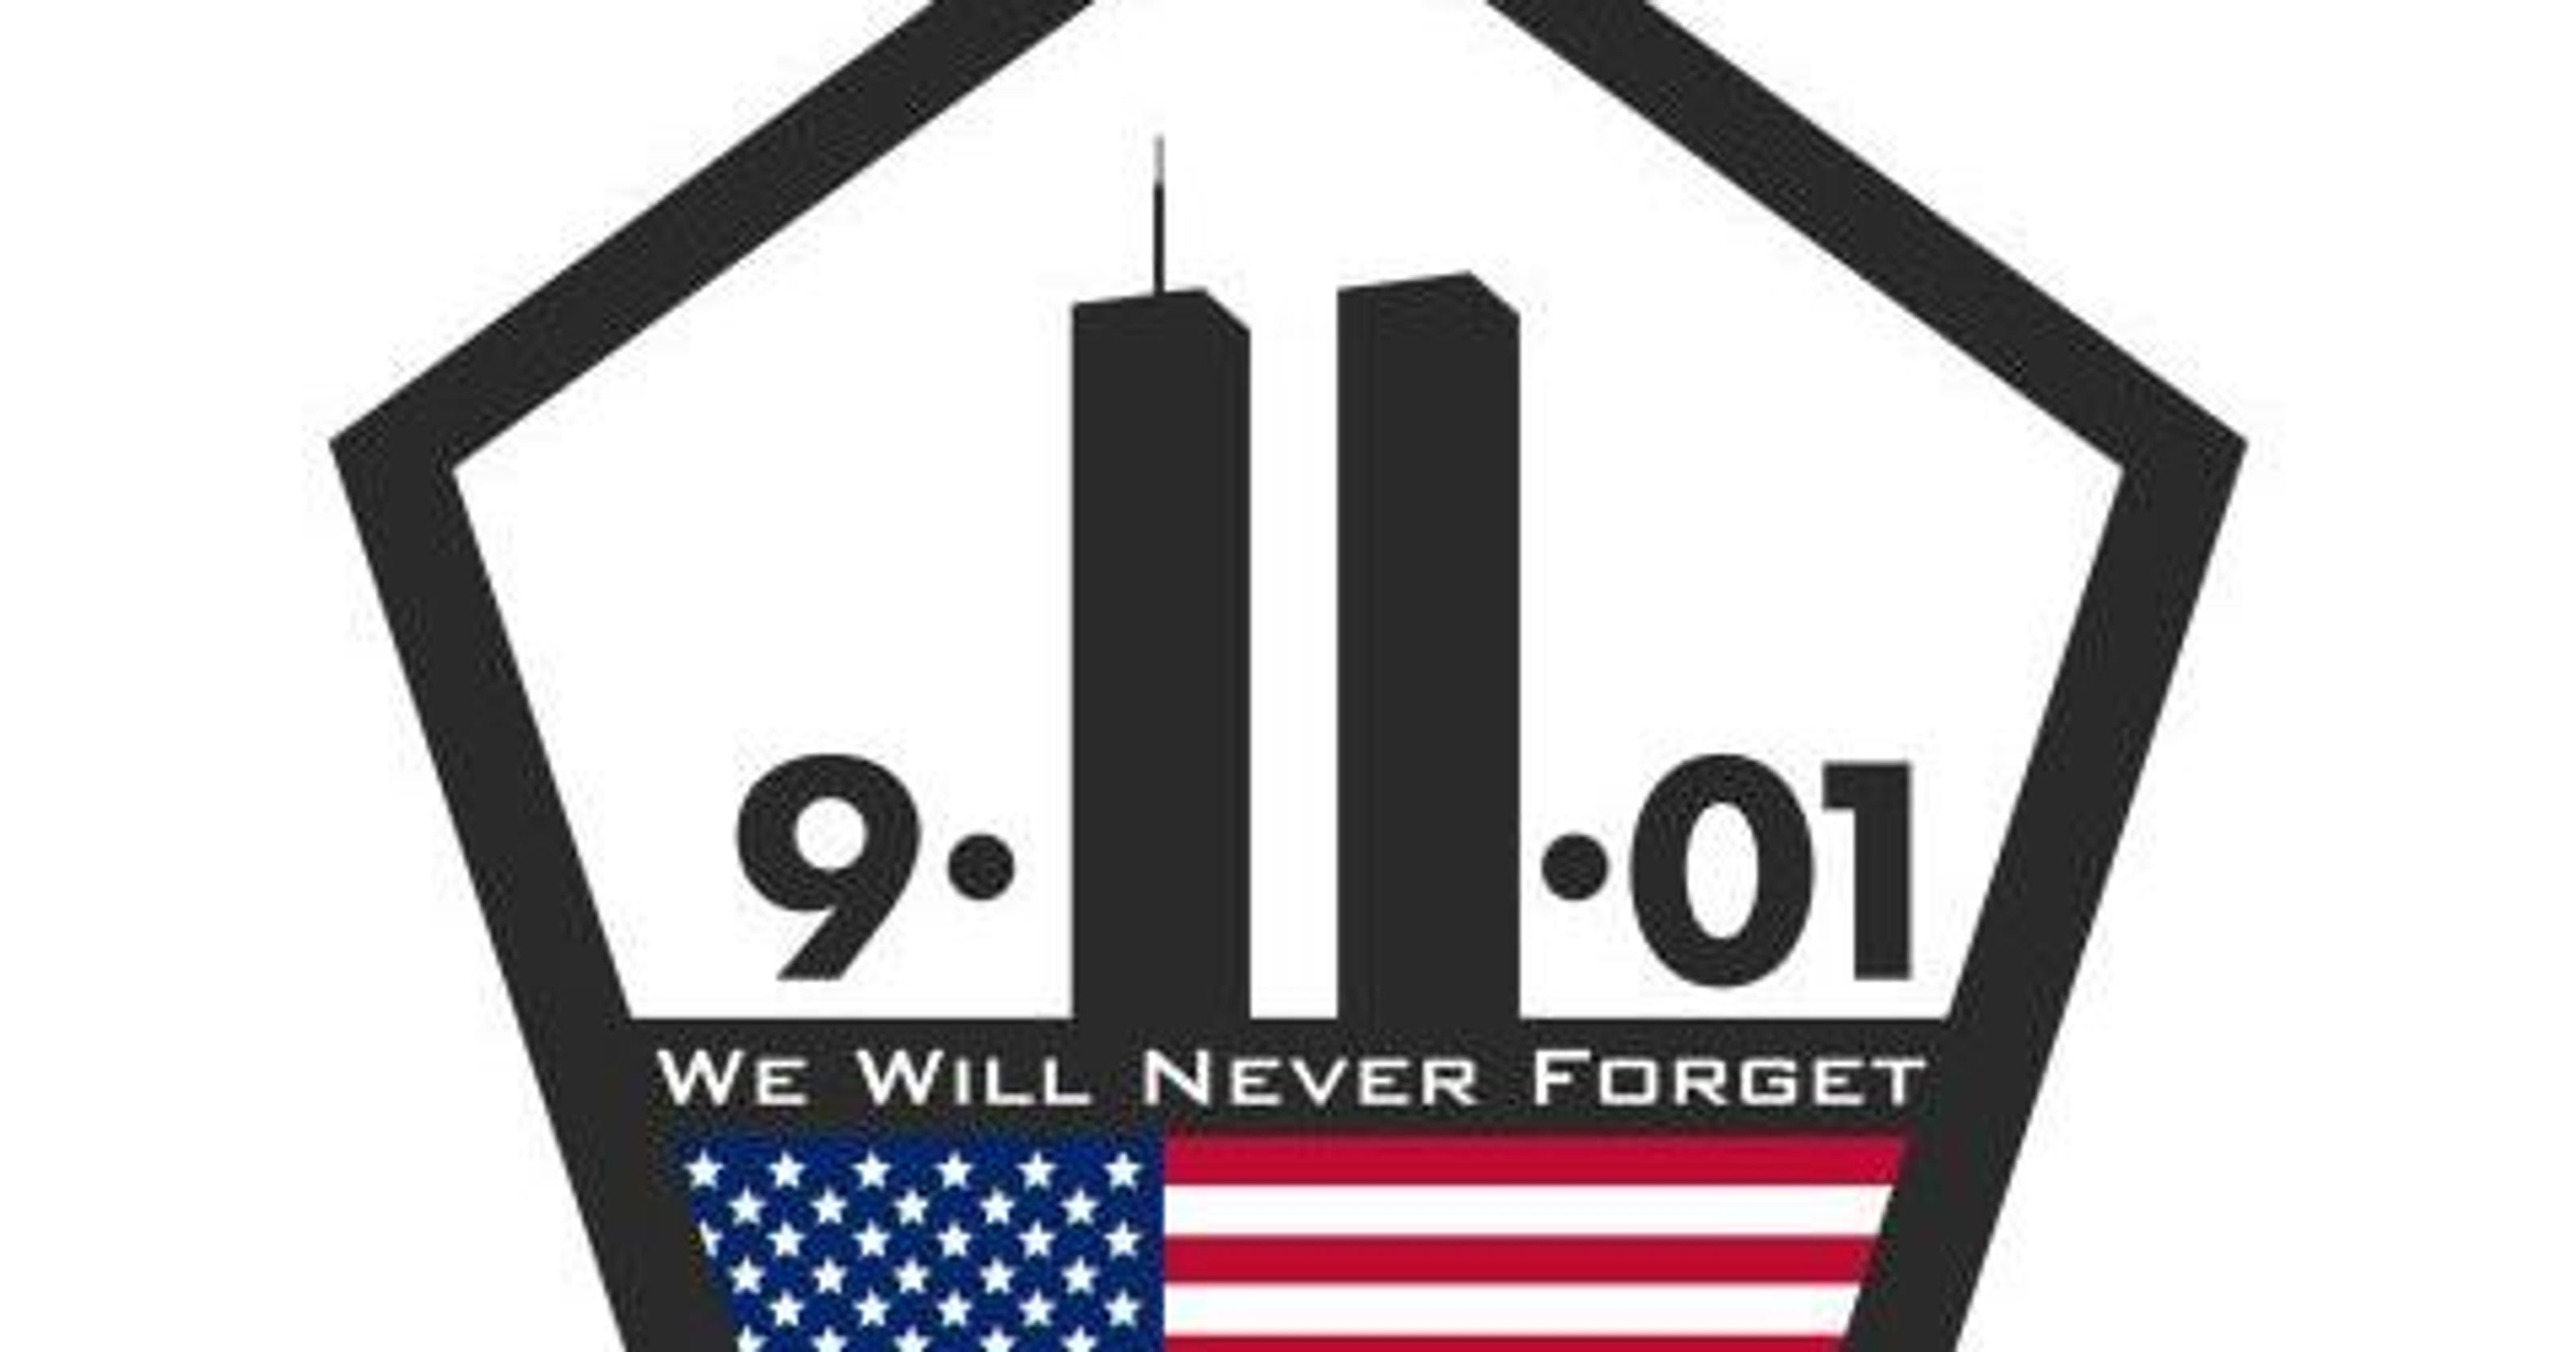 9 11 01 clipart freeuse download FDNY retiree to give 9/11 steel to H.J. Martin freeuse download